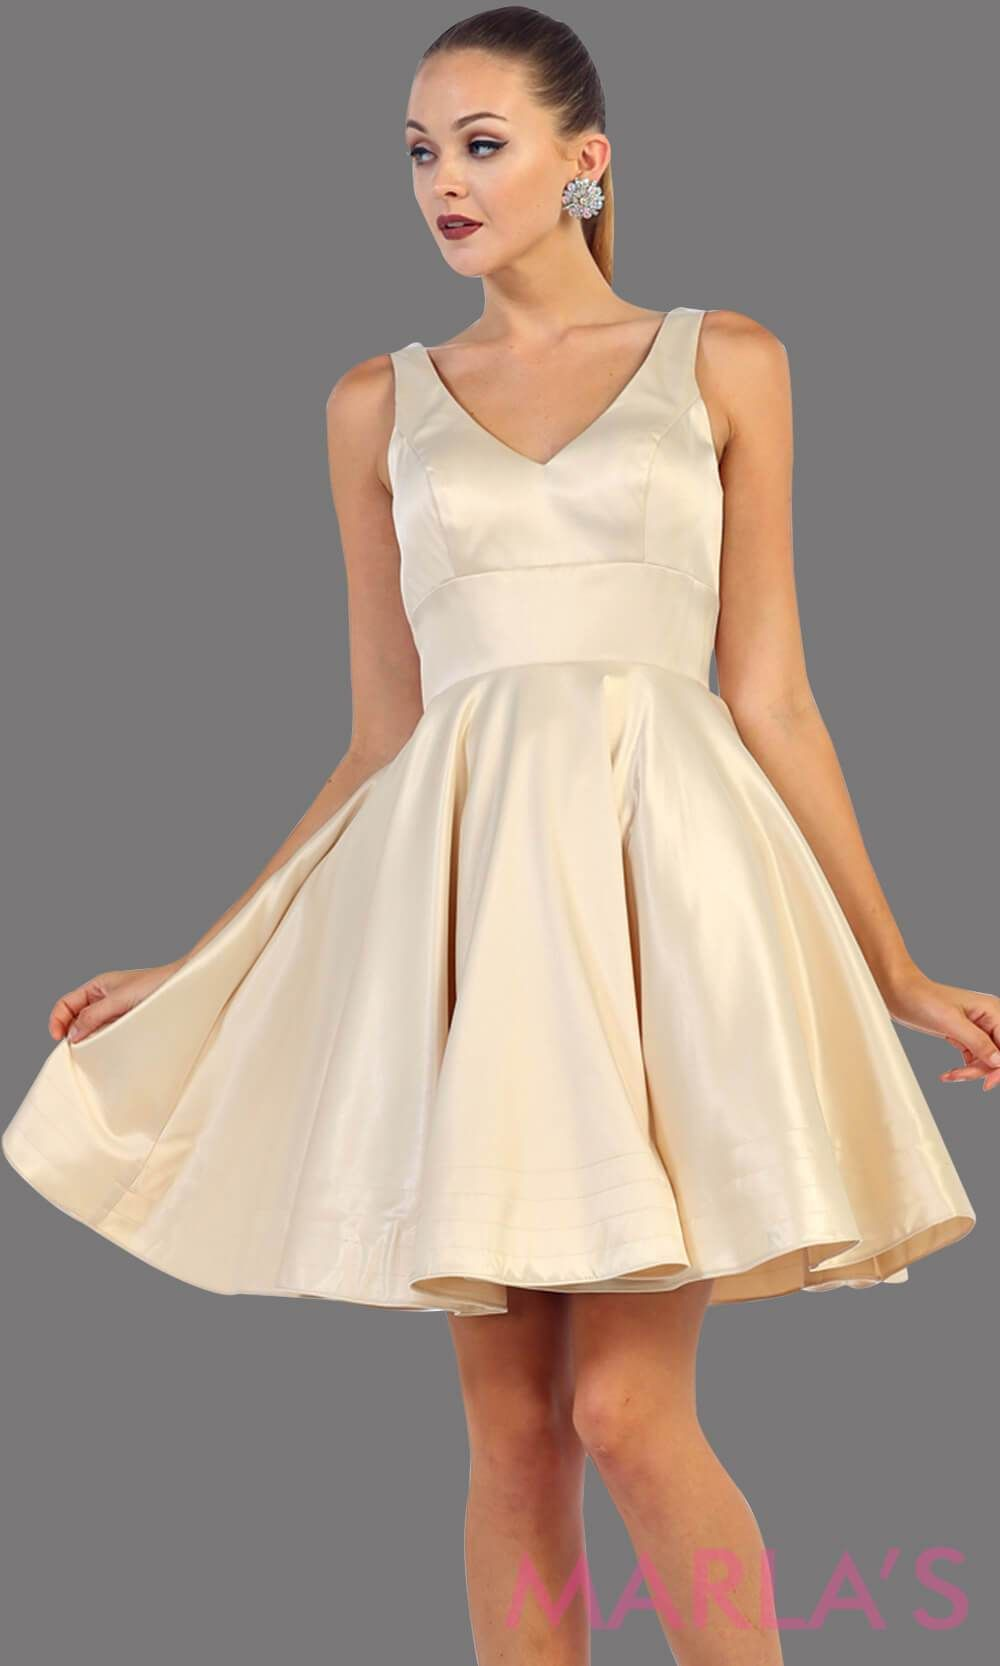 29dc834695b Short champagne satin v neck dress with wide straps. This is the perfect  short light gold dress for grade 8 graduation